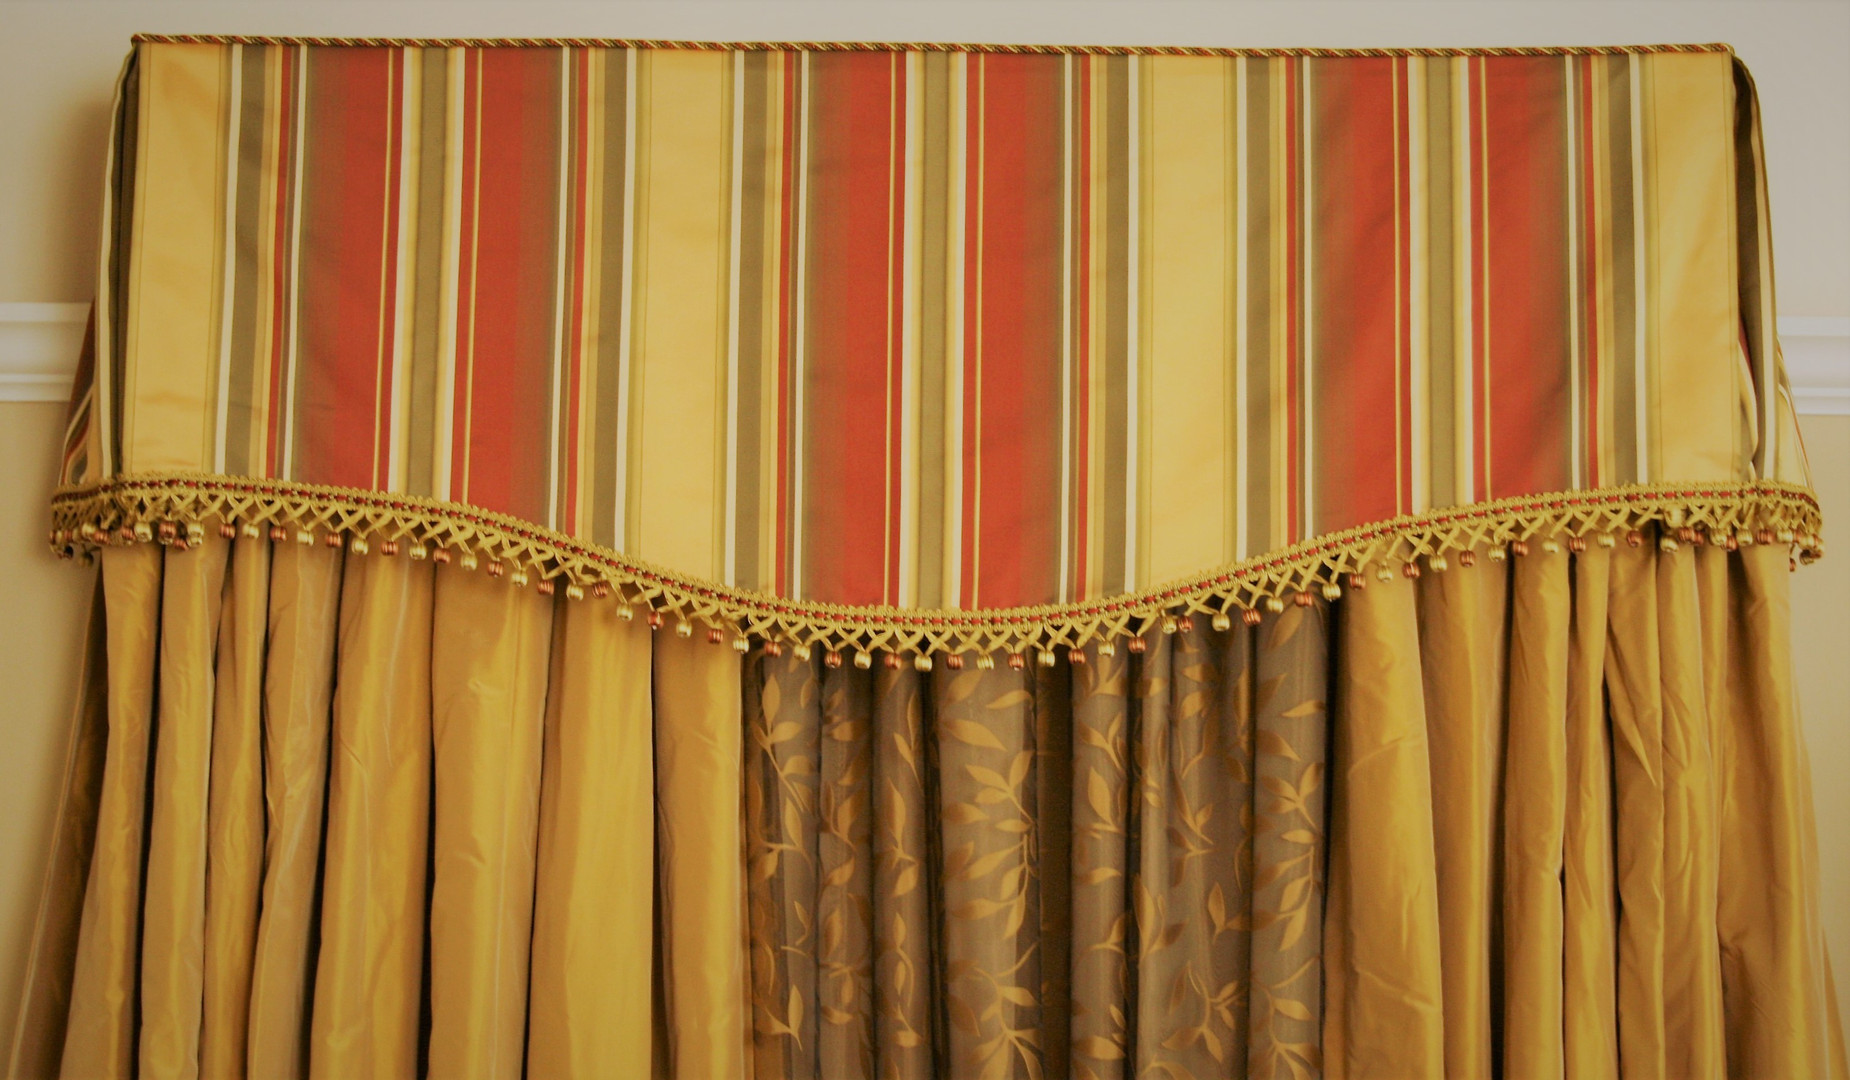 VALANCE Kick Pleat Valance with cord and